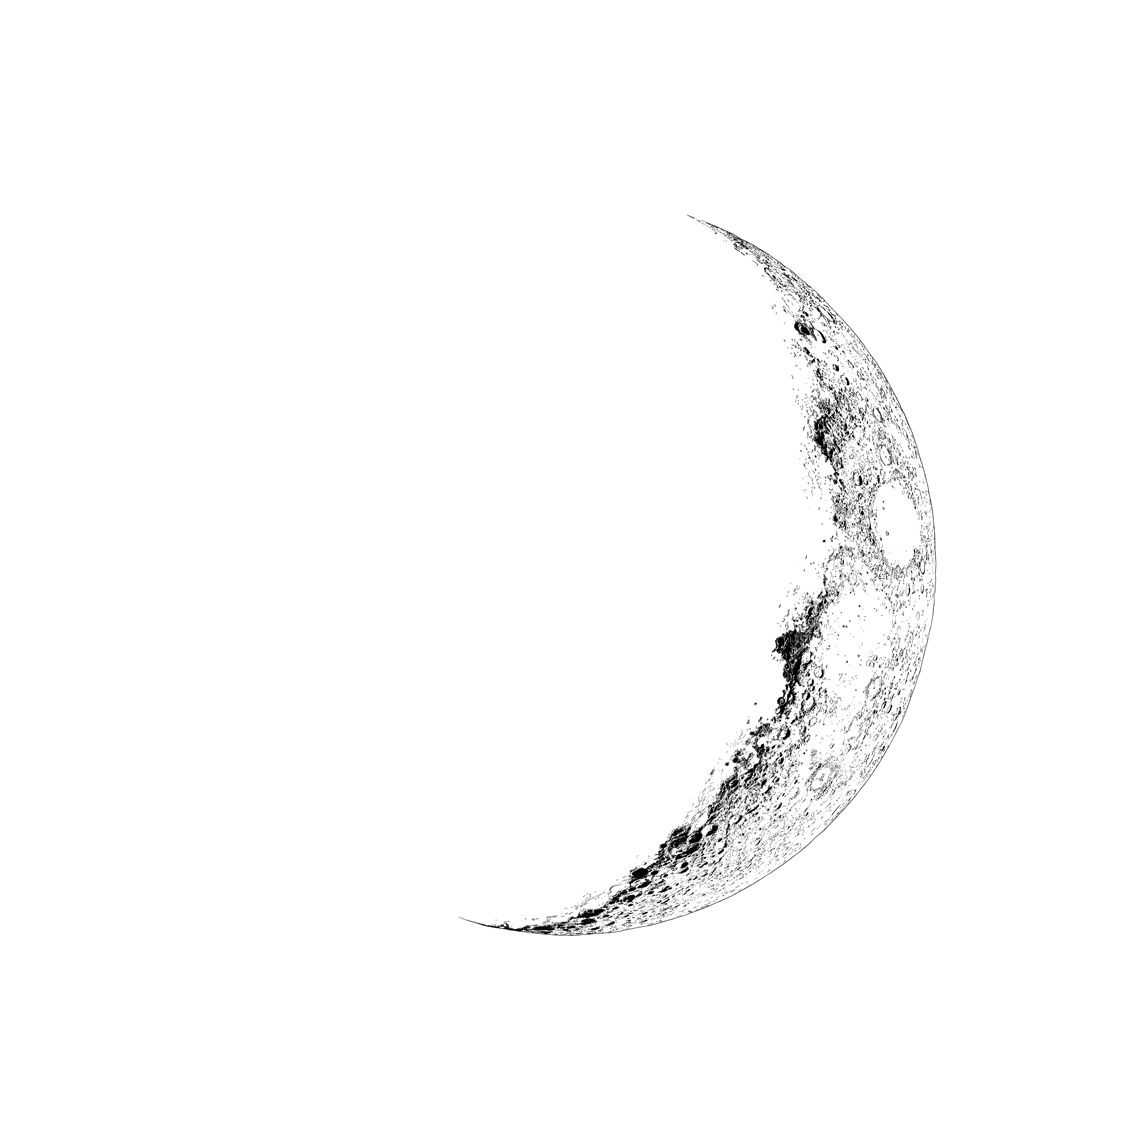 crescent moon drawing - Google Search | tattoos | Tattoos ...